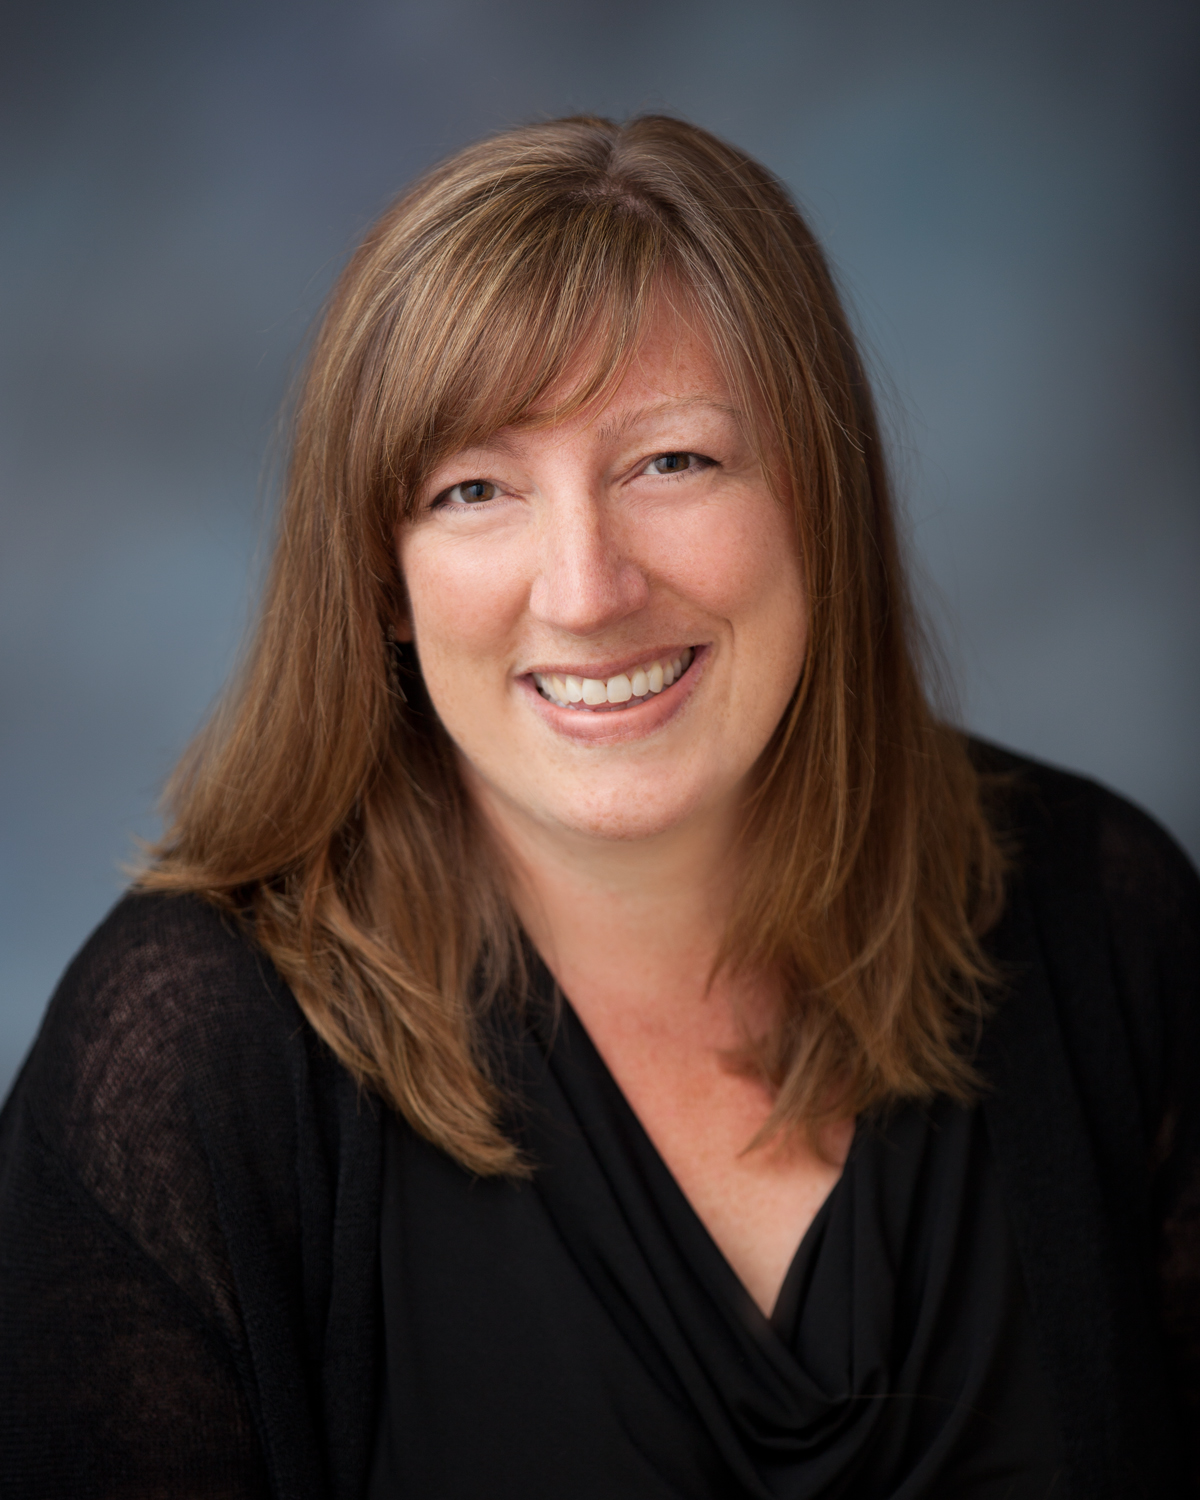 Sandy Karp, CNM, MN - Nurse-Midwife, Obstetrics and Gynecology, Oregon City, OR